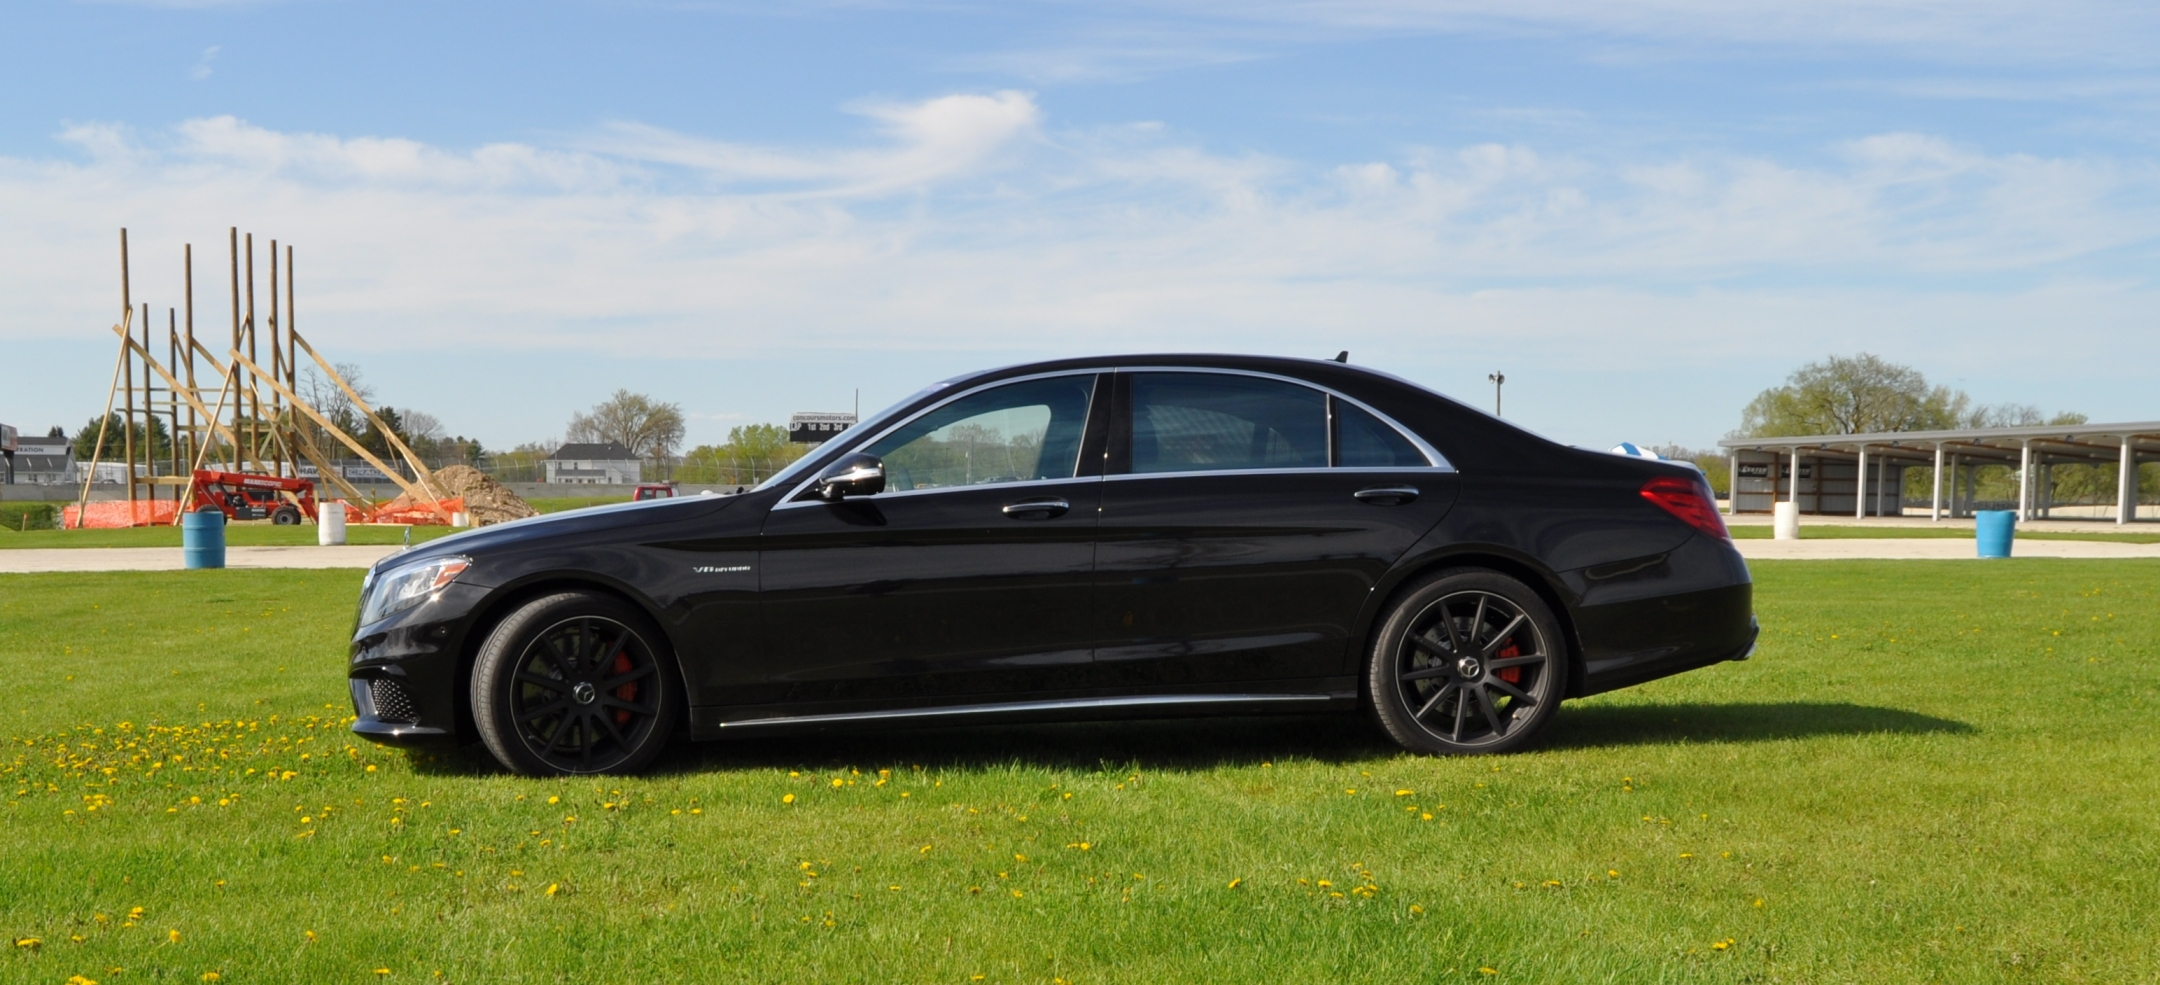 Road test review 2014 mercedes benz s63 amg 4matic sedan for 2014 mercedes benz s63